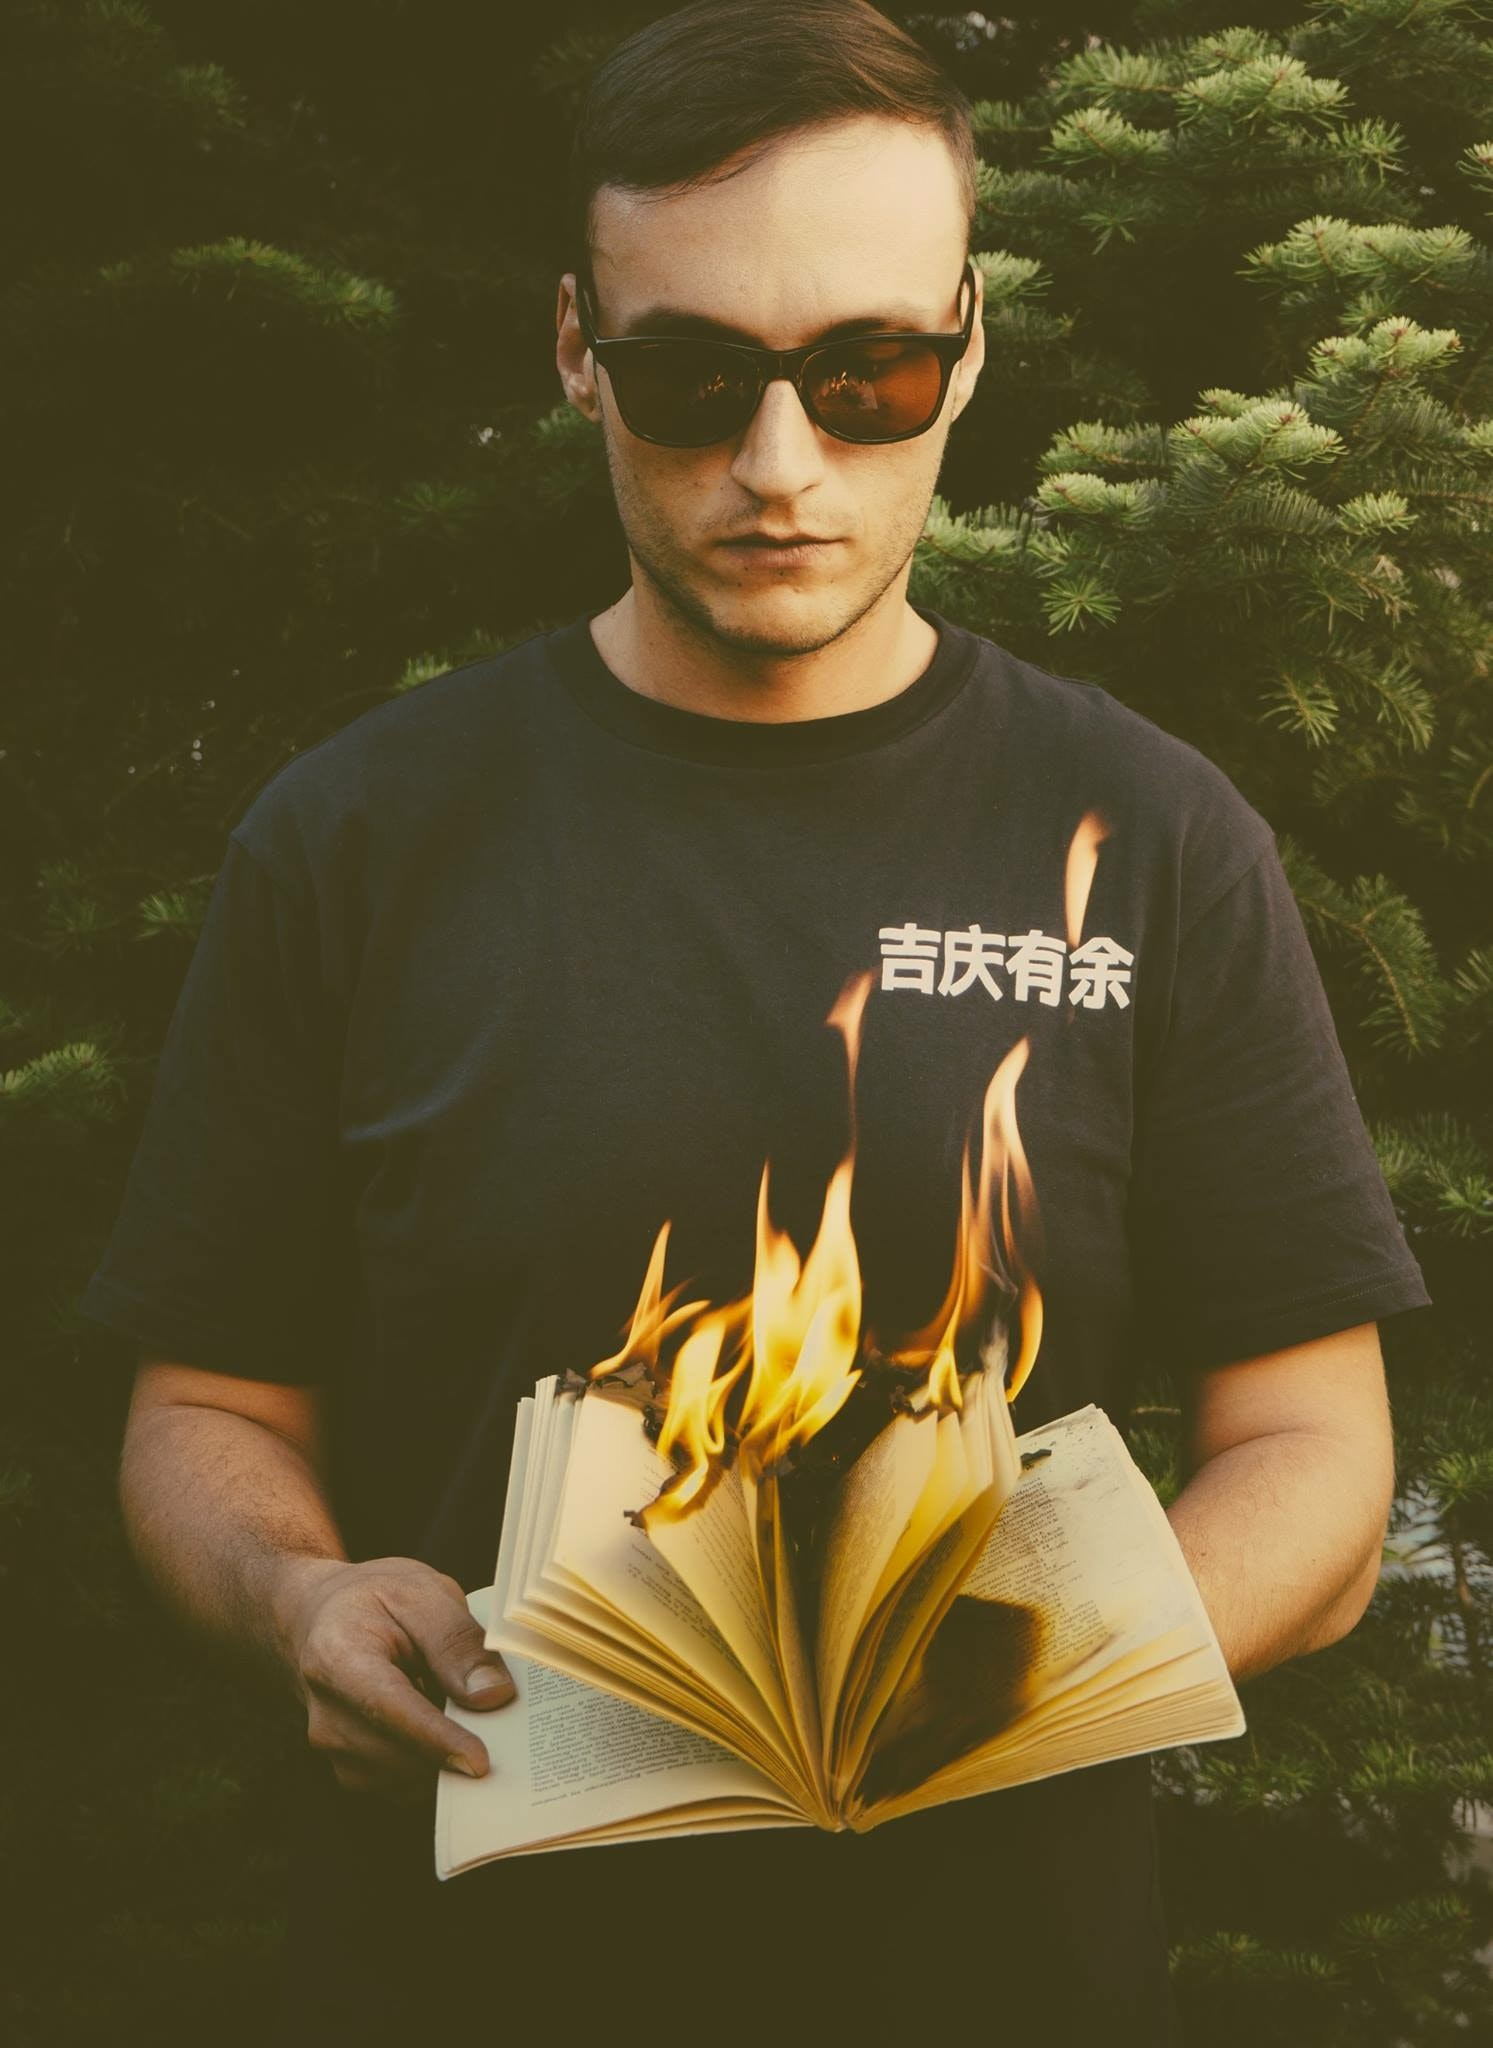 man standing while holding burning book